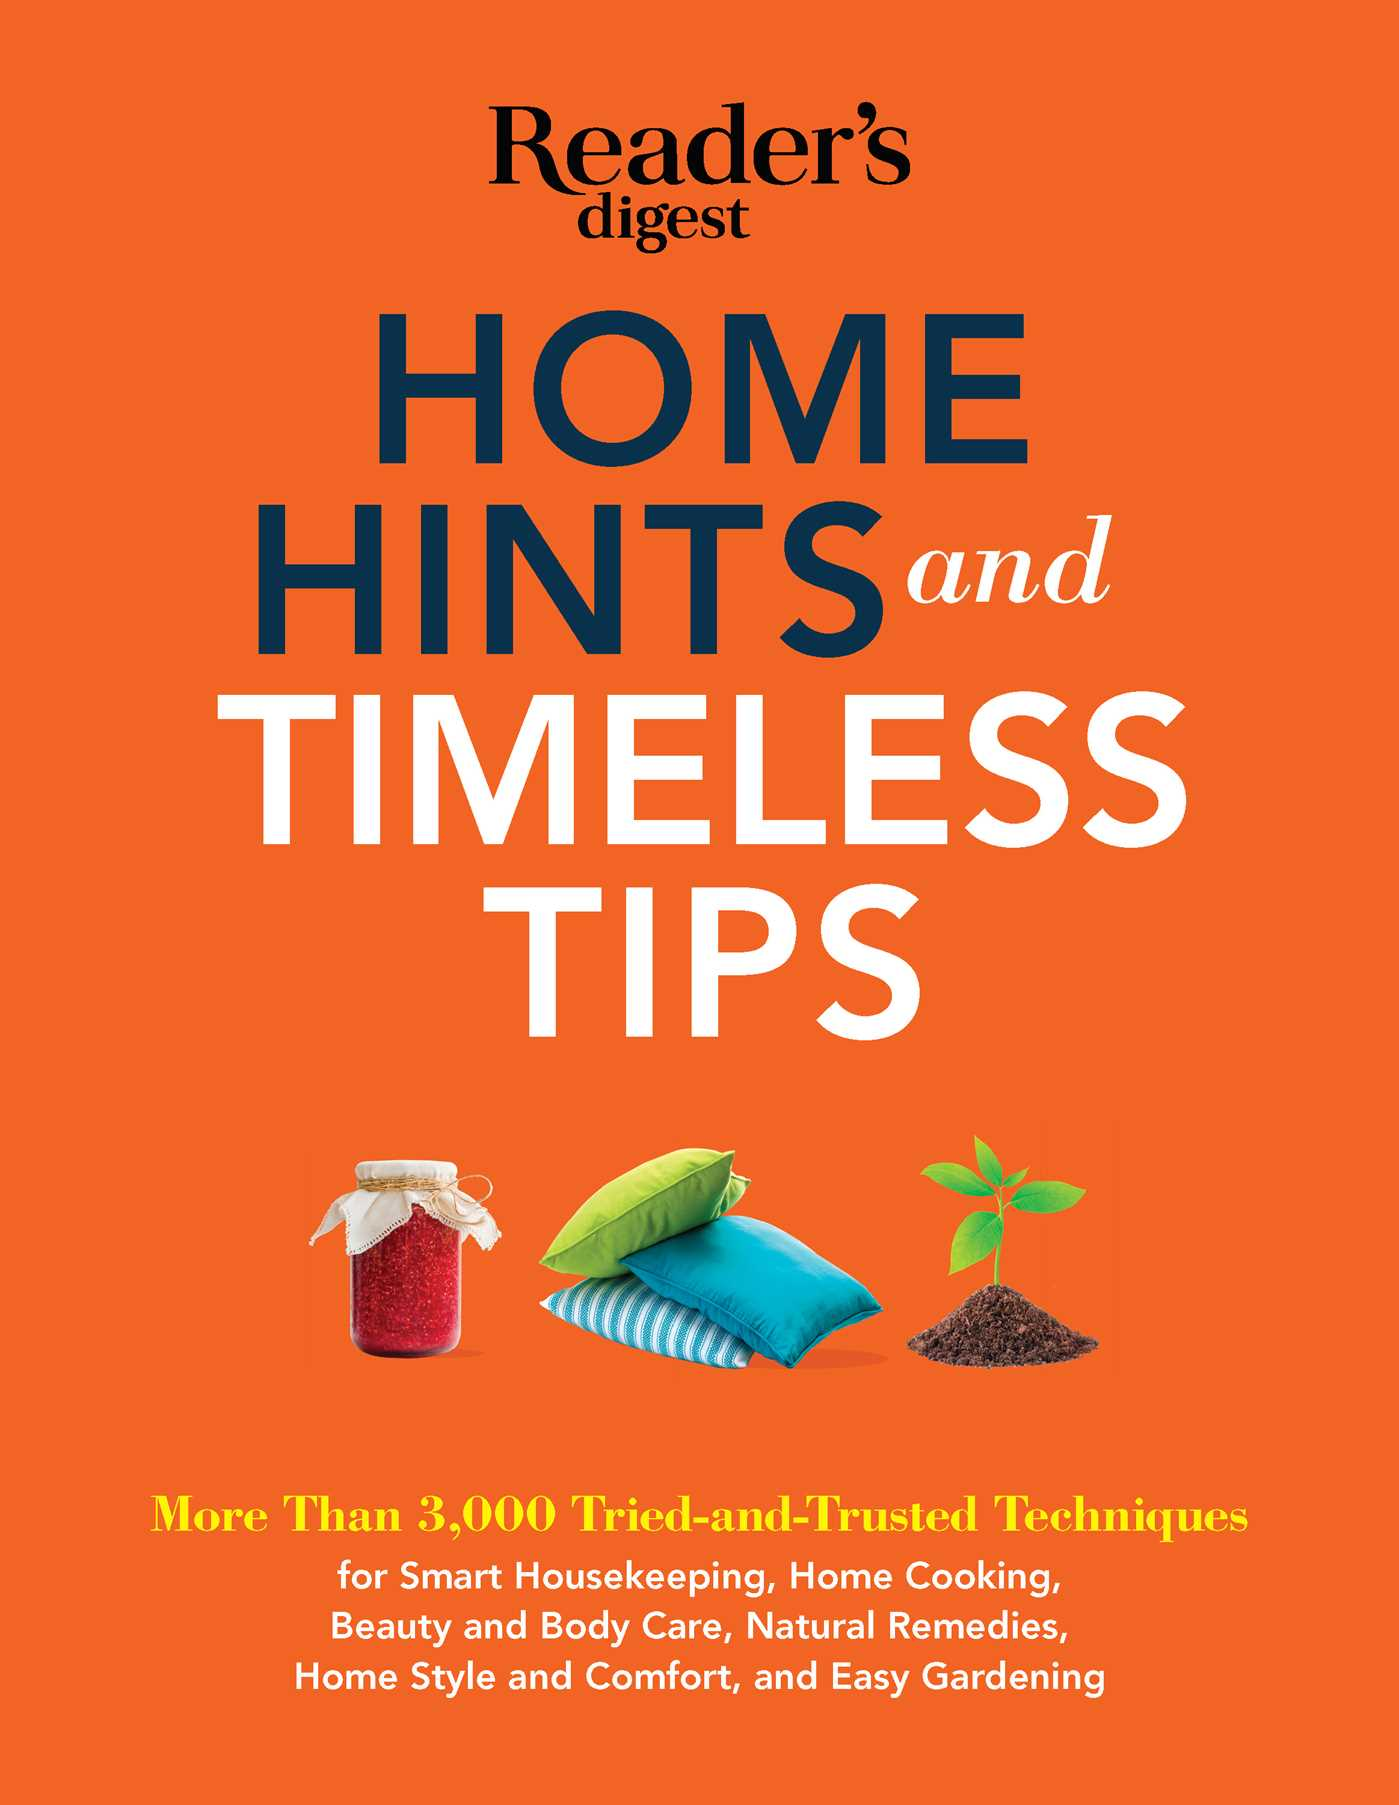 Home hints and timeless tips 9781621452768 hr